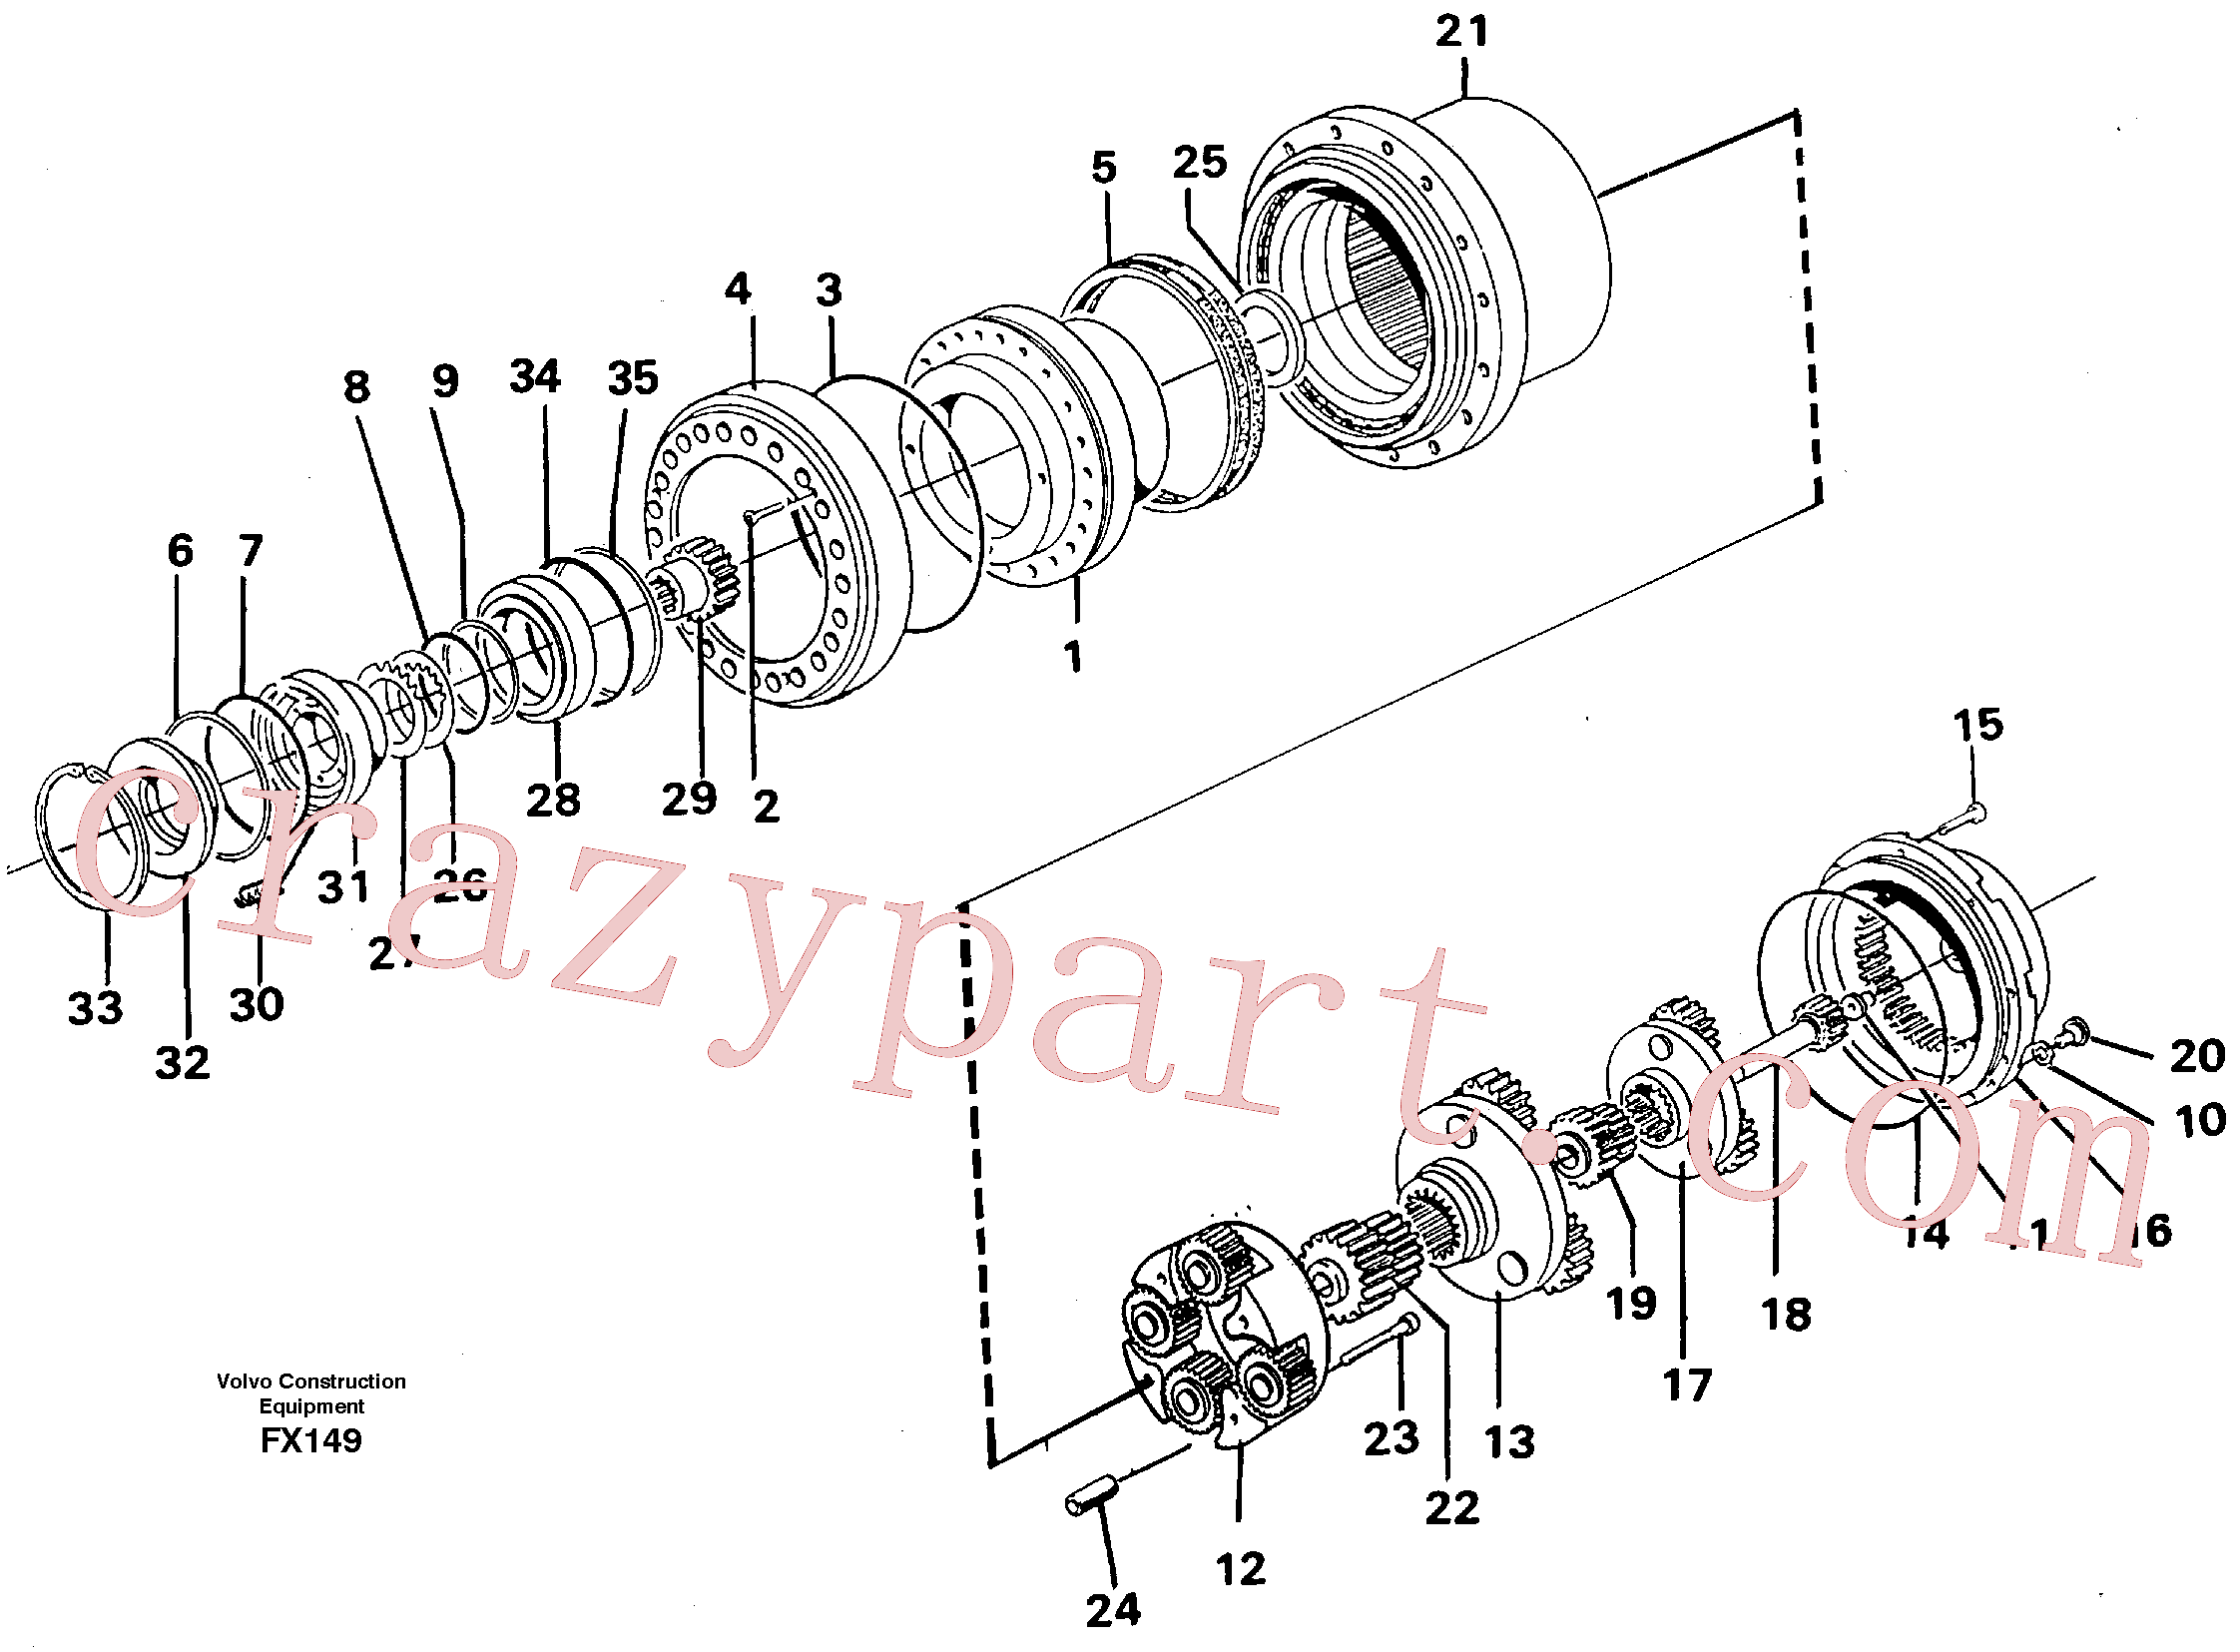 RM70921267 for Volvo Planetary drive(FX149 assembly)